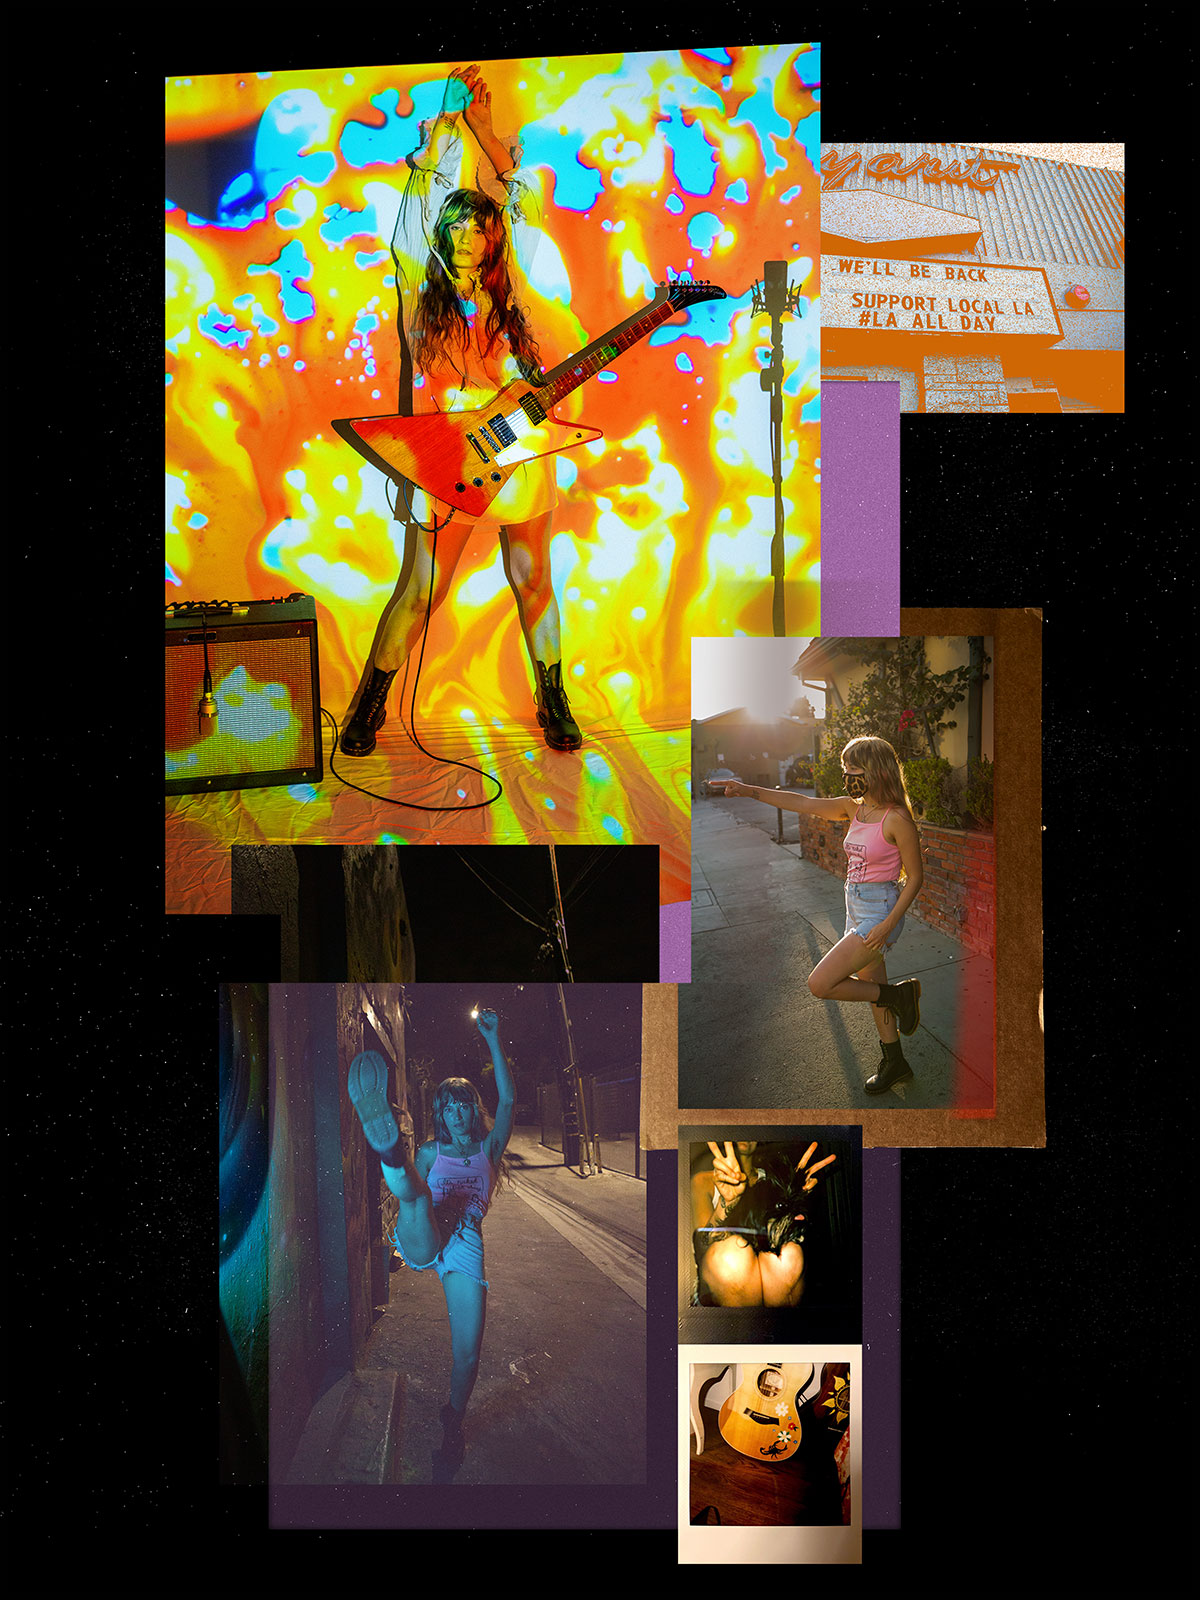 A collage of Lauren. Standing with an electric guitar with psychadelic colors, relaxing on the street wearing a mask, high kicking on the street, and close up photos of acoustic guitar